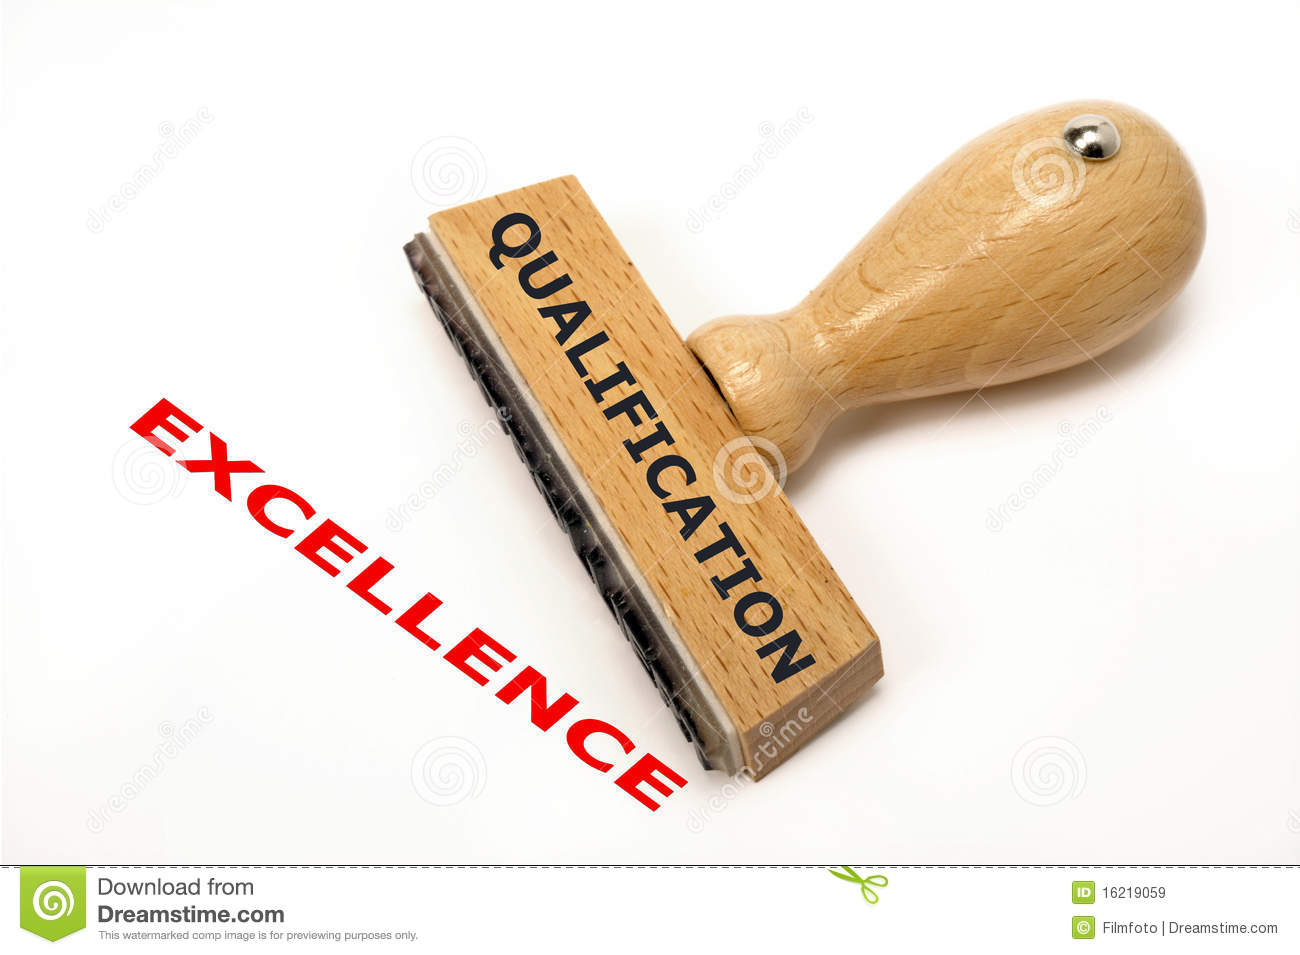 Qualification excellence